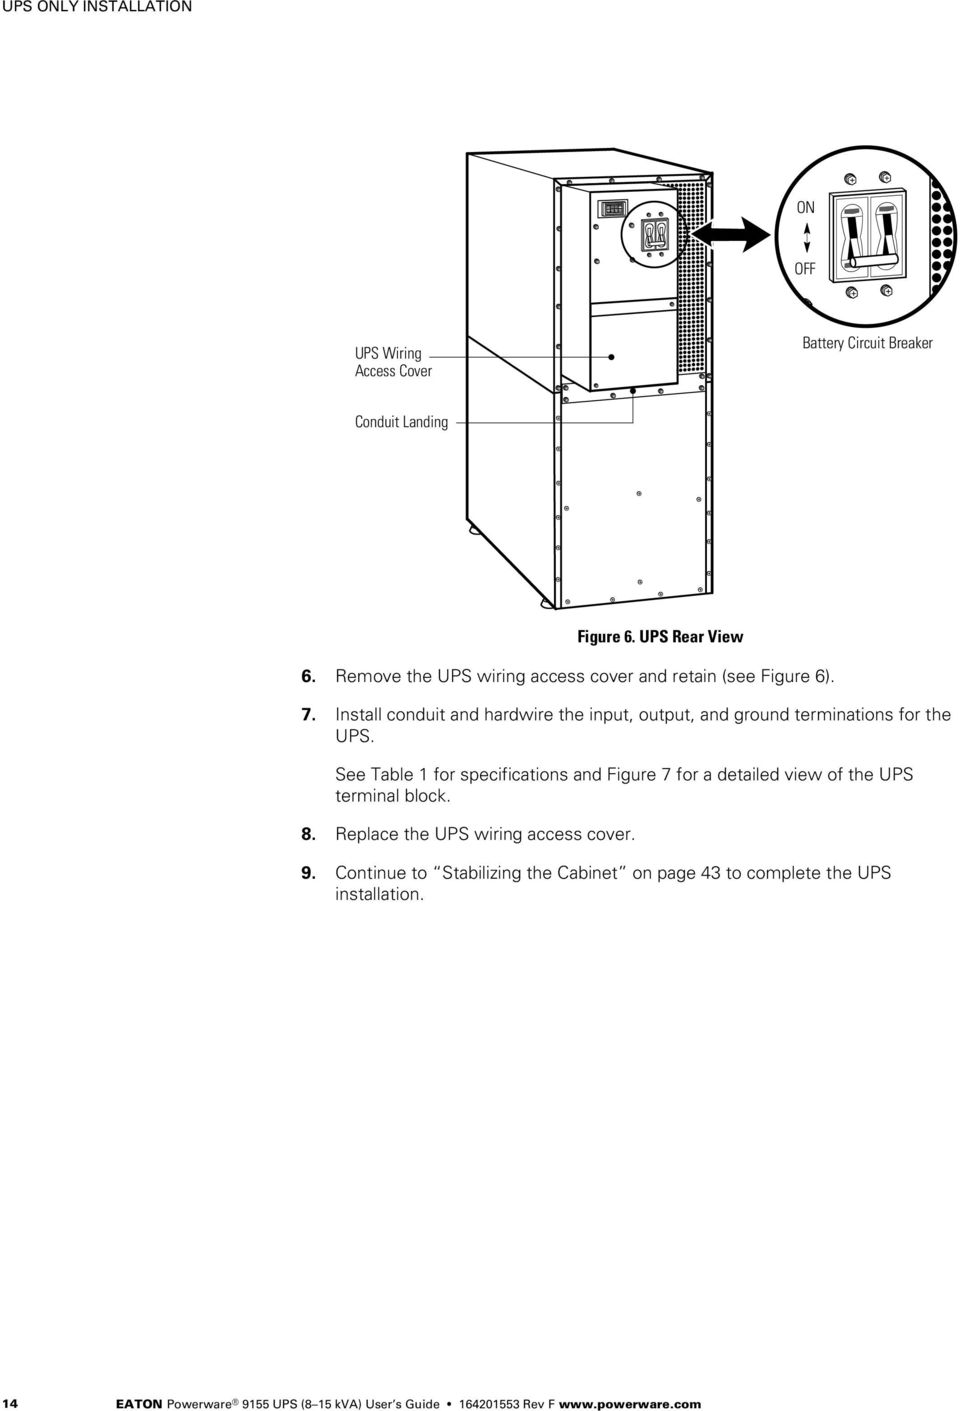 hight resolution of install conduit and hardwire the input output and ground terminations for the ups